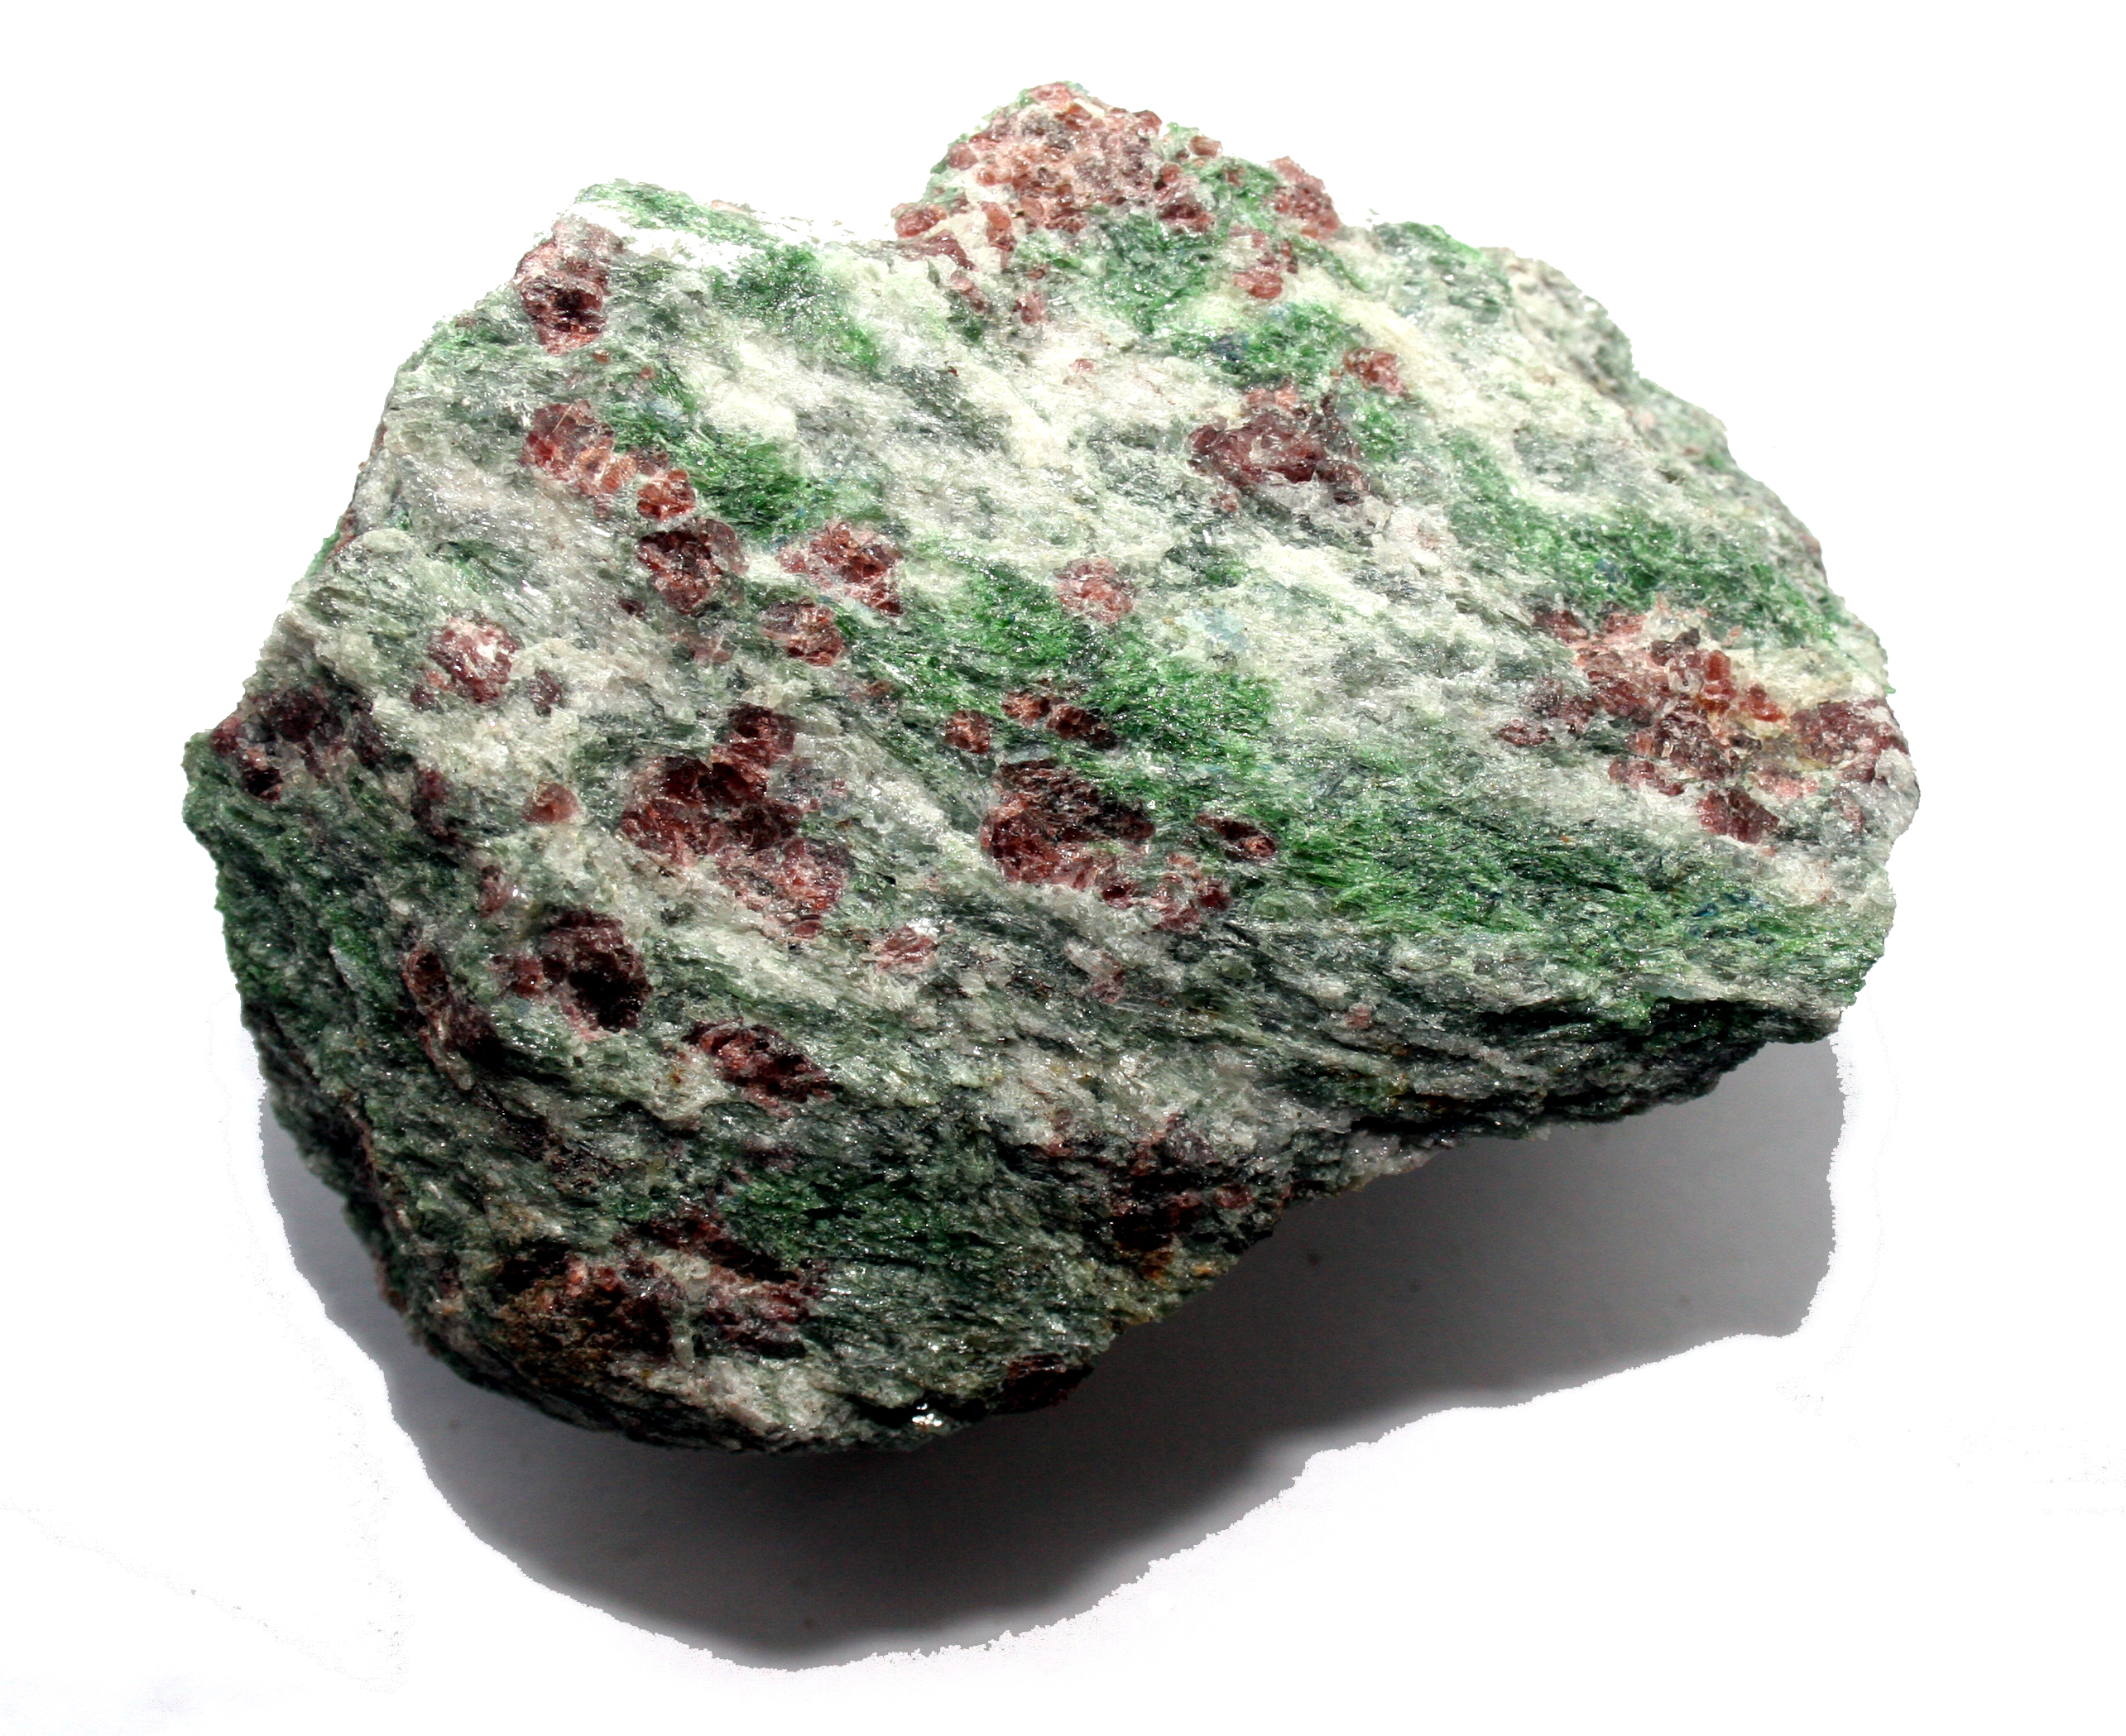 latest monzonite diamond wiki montana leonard tertiary usa earliest butte file cretaceous mine enargite ma to